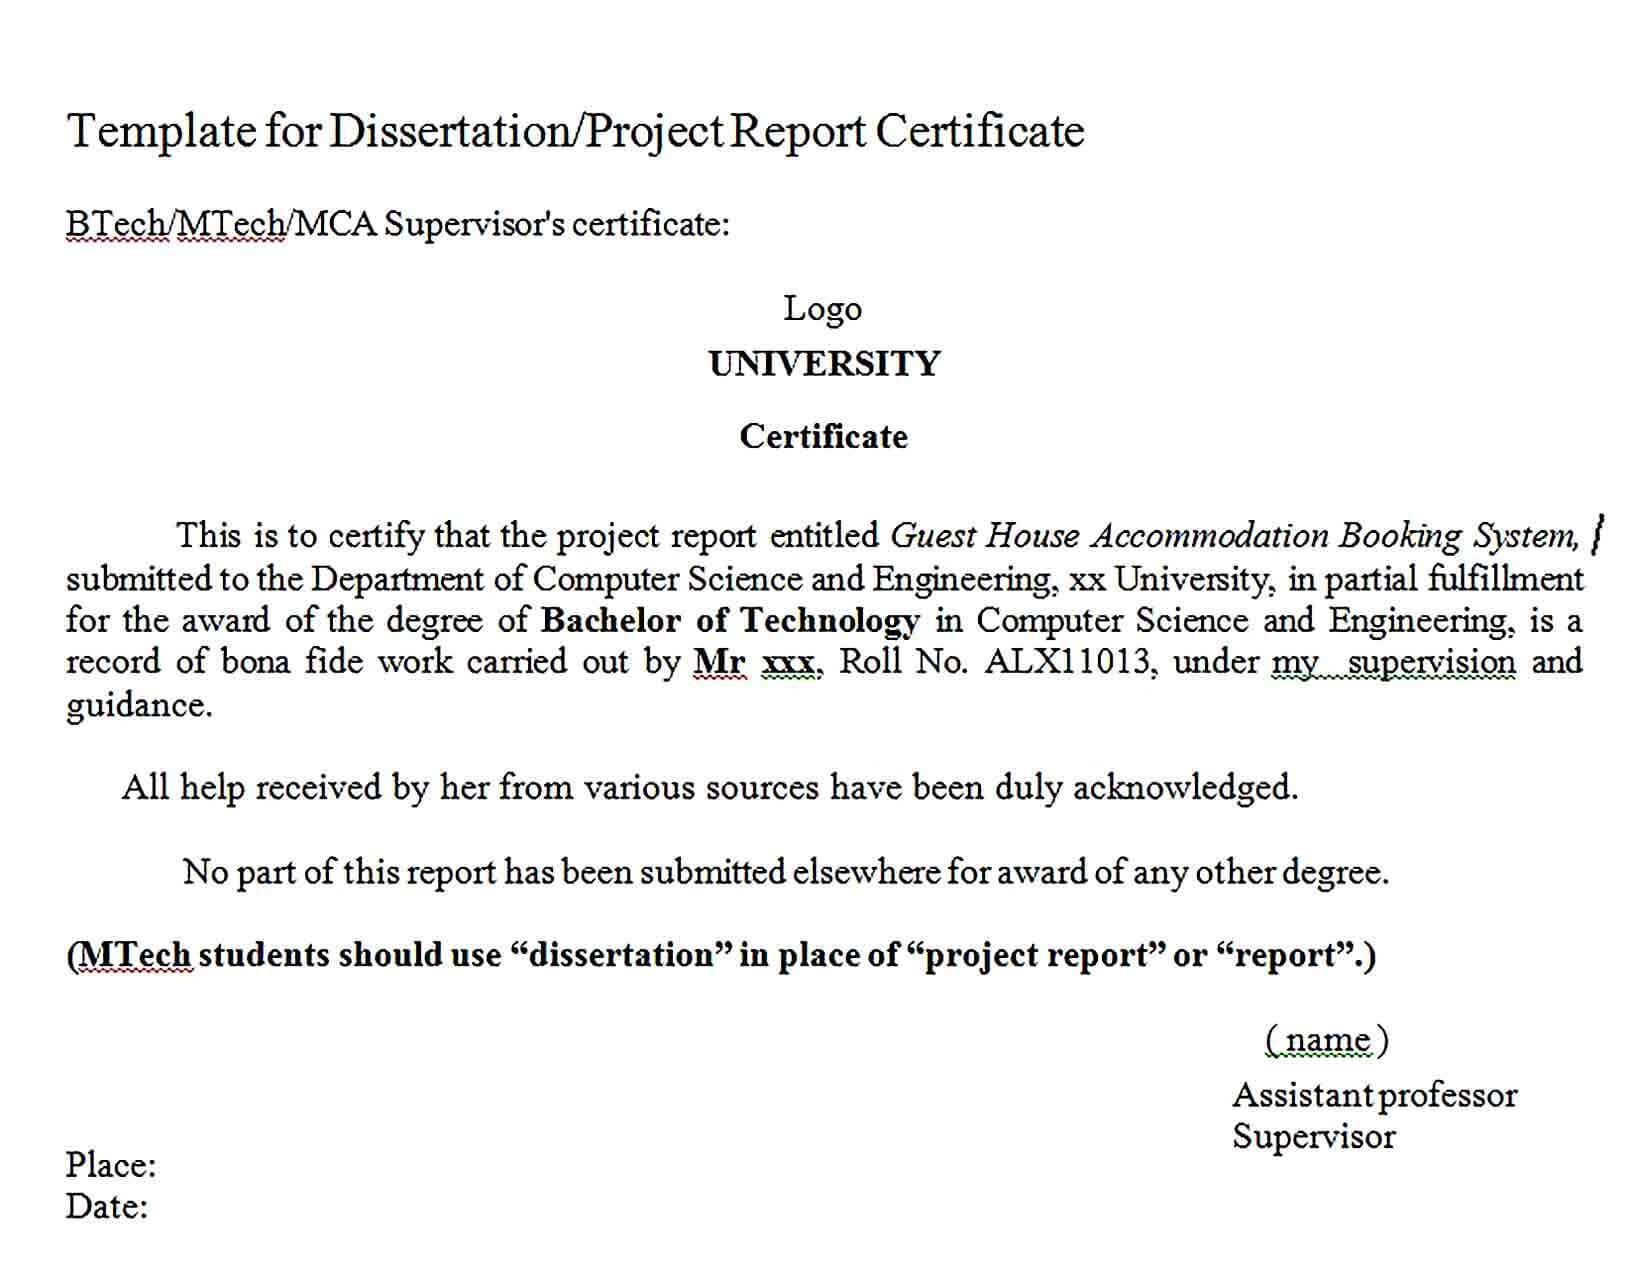 Sample Project Report Certificate Format